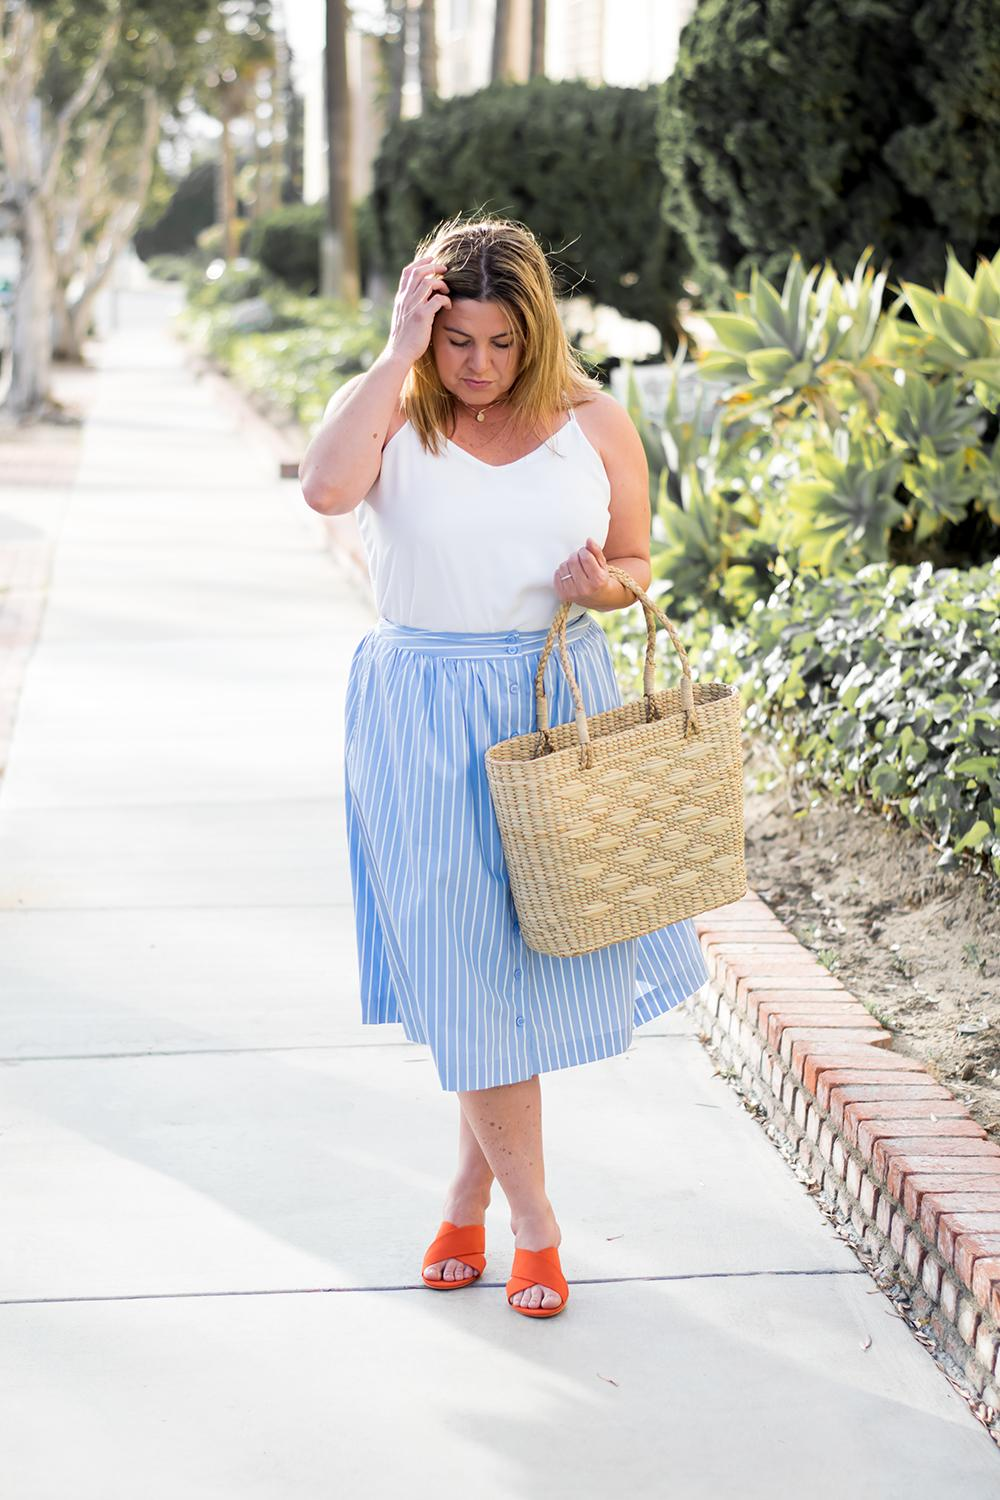 Buttoned-Midi-Skirts-and-Colorful-Mules-Top-Blogger-Outfits-for-2017-Barefoot-in-LA-Fashion-Blog-Style-Ideas_1144